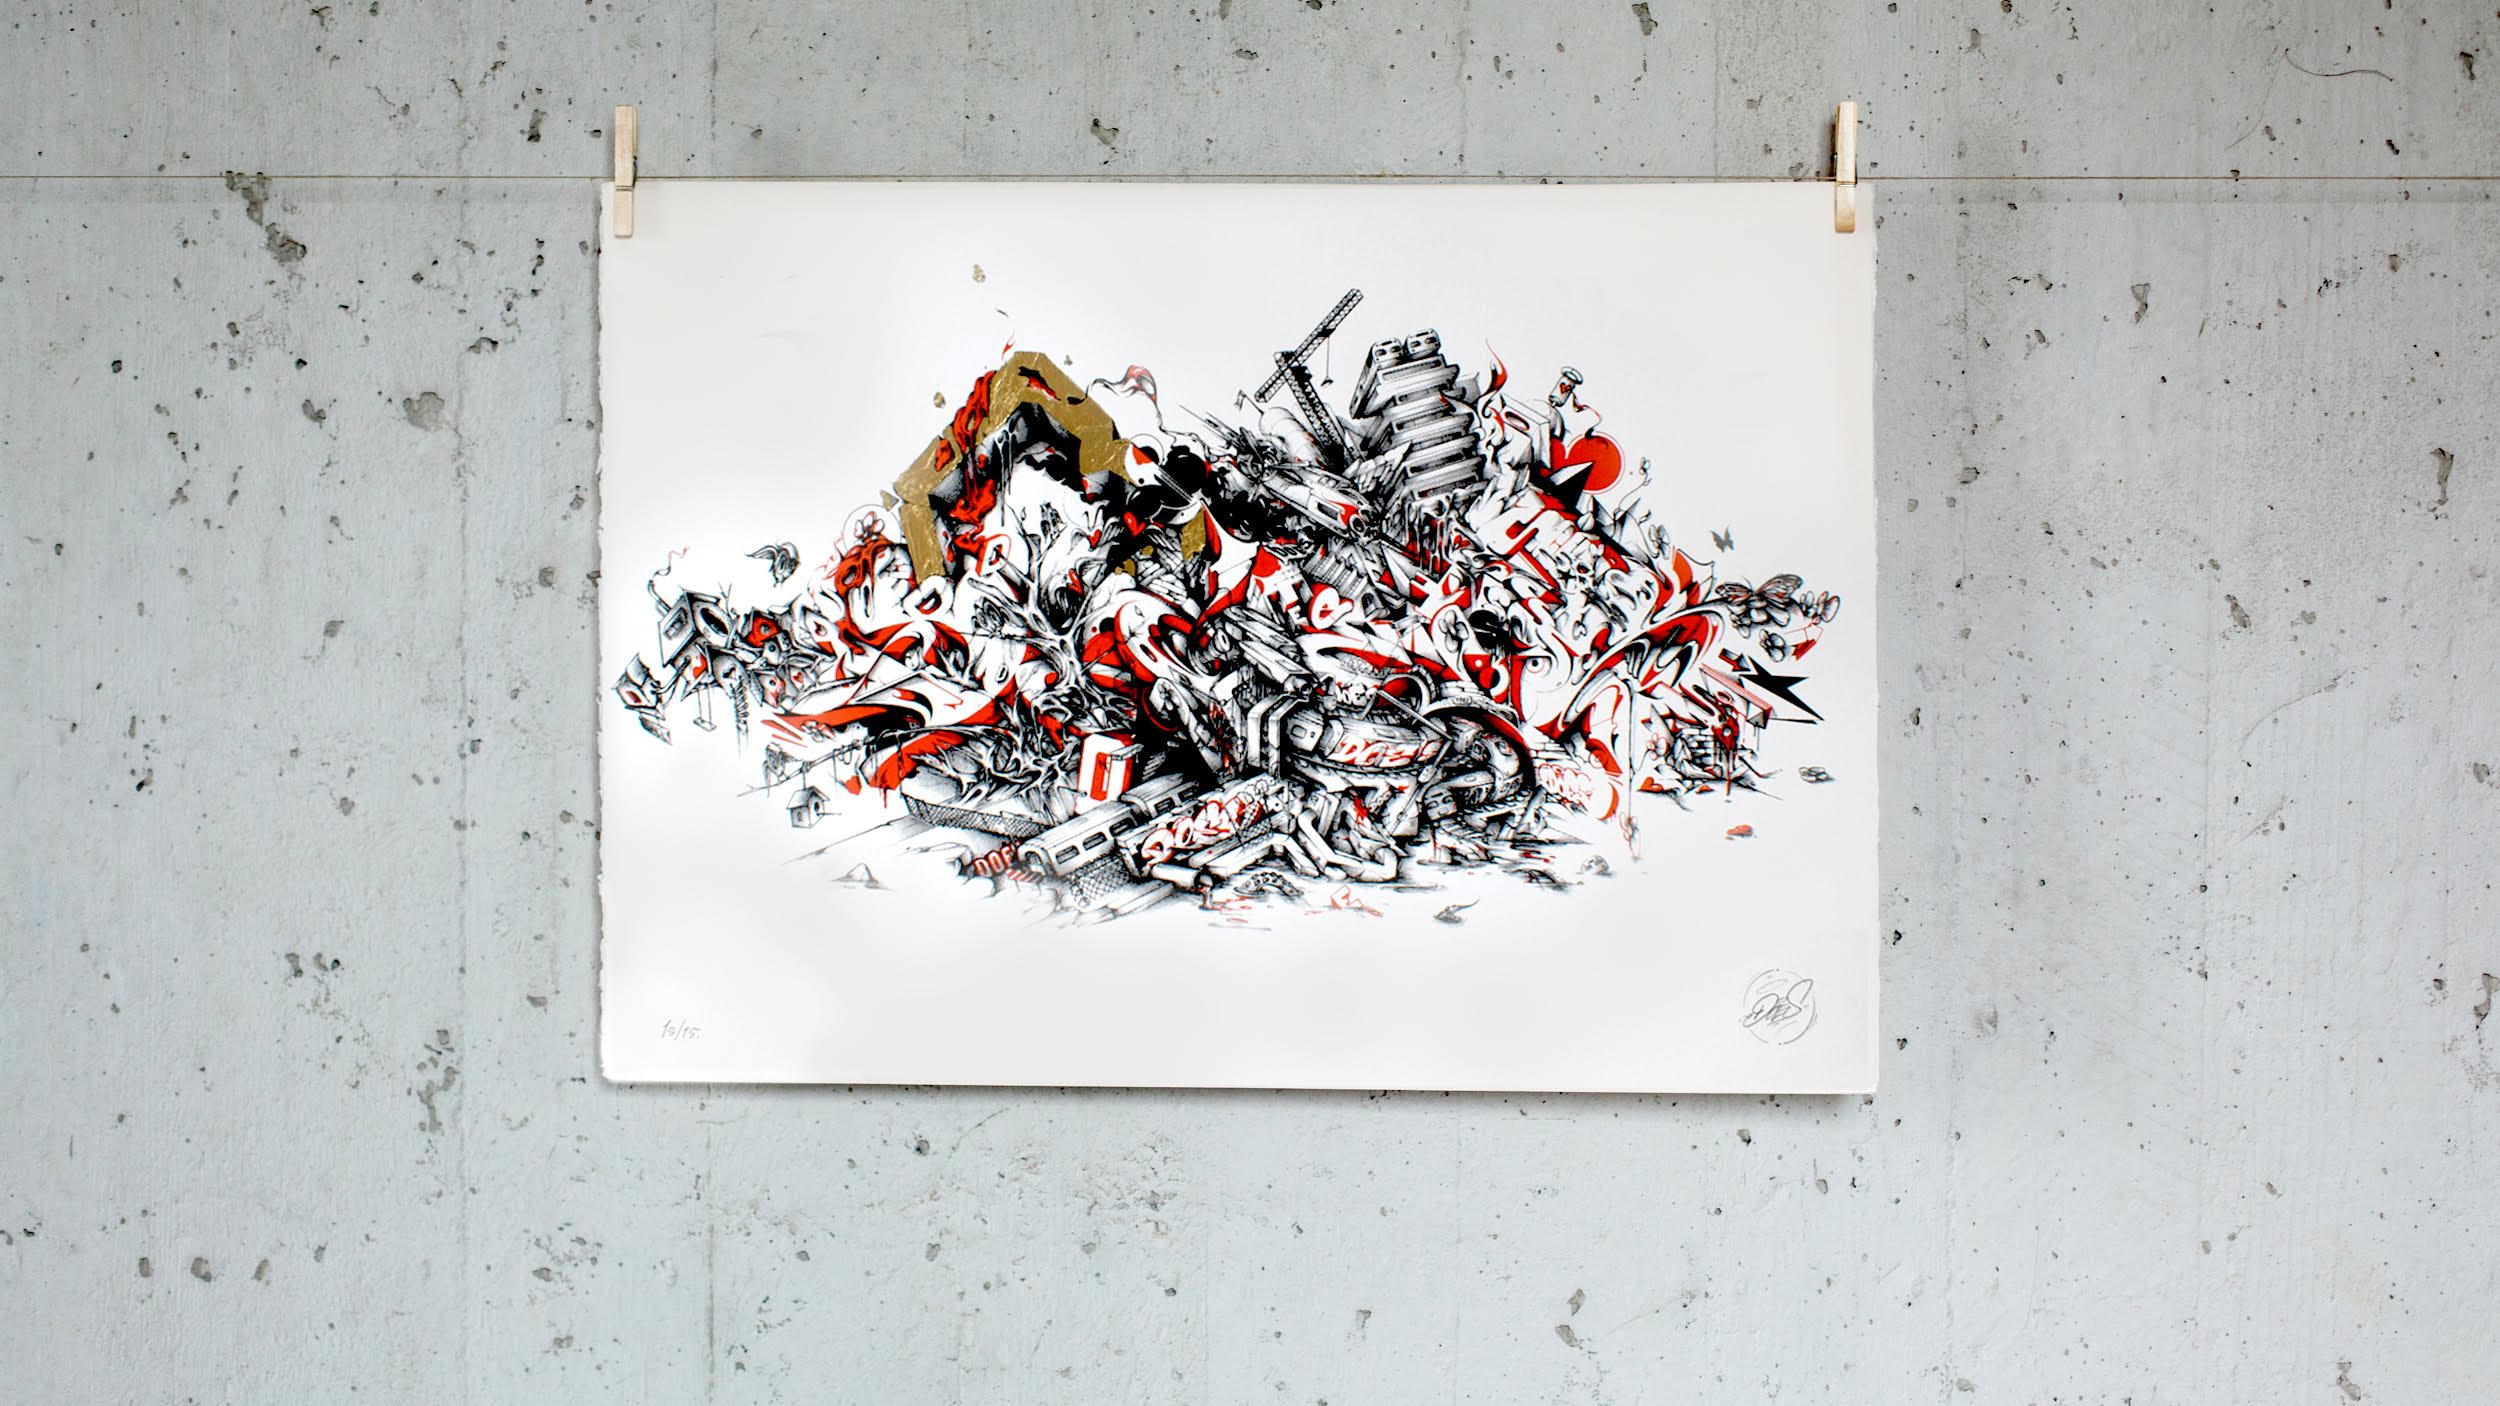 A work by Does - We built this city print